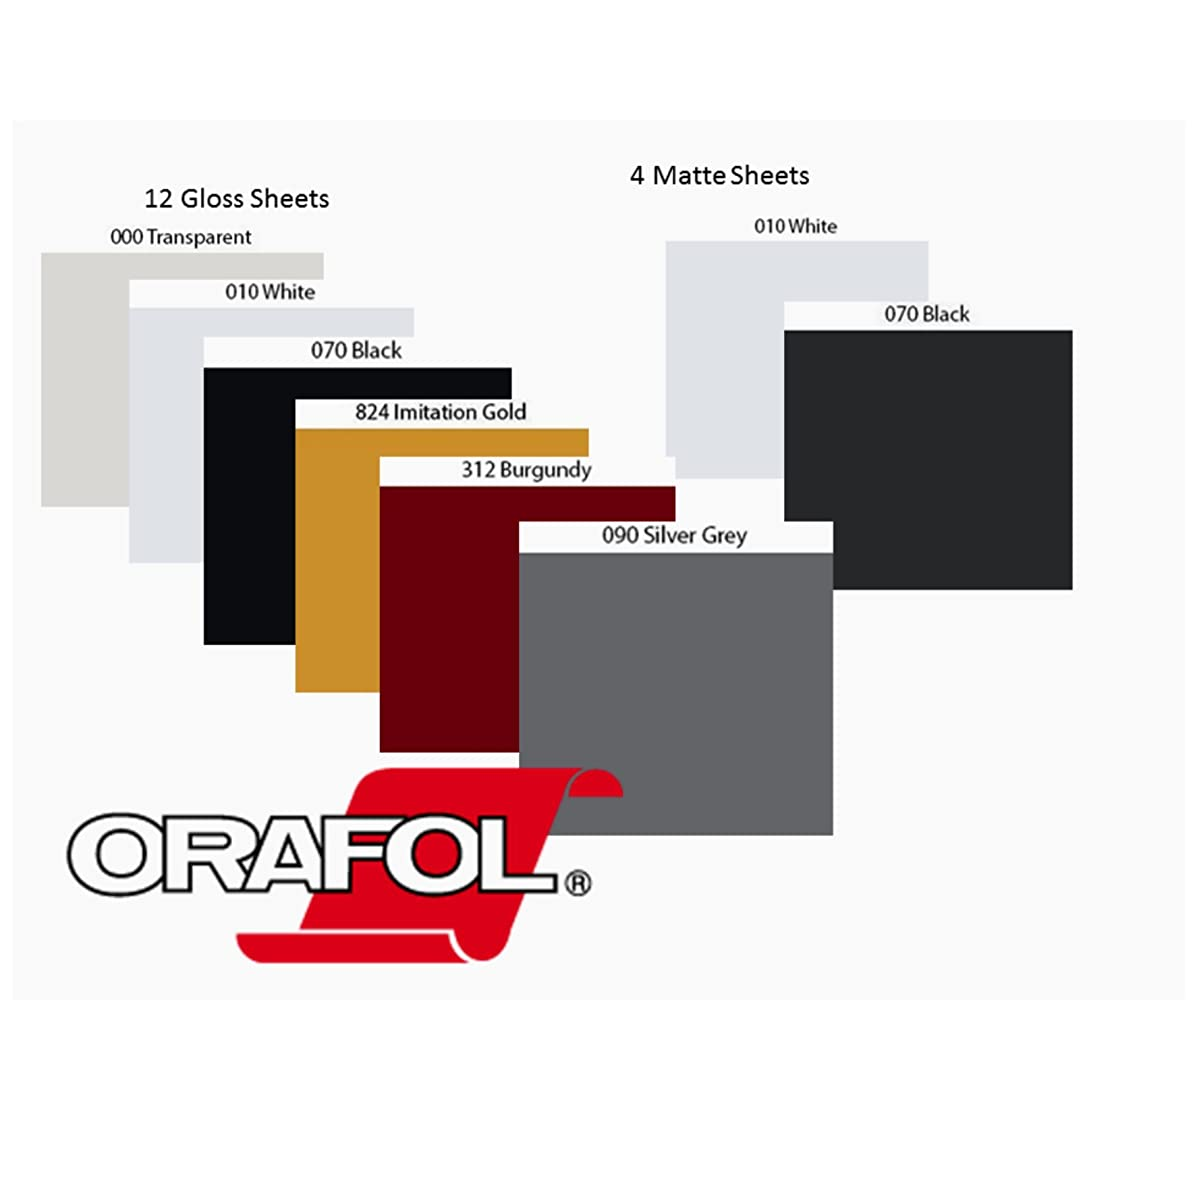 Oracal 651 Sample Vinyl Bundle 8 colors (16 Sheets) 12x12 Glossy: Brugandy, Black, White, Gold, Silver and Transparent; Matte: Black and White